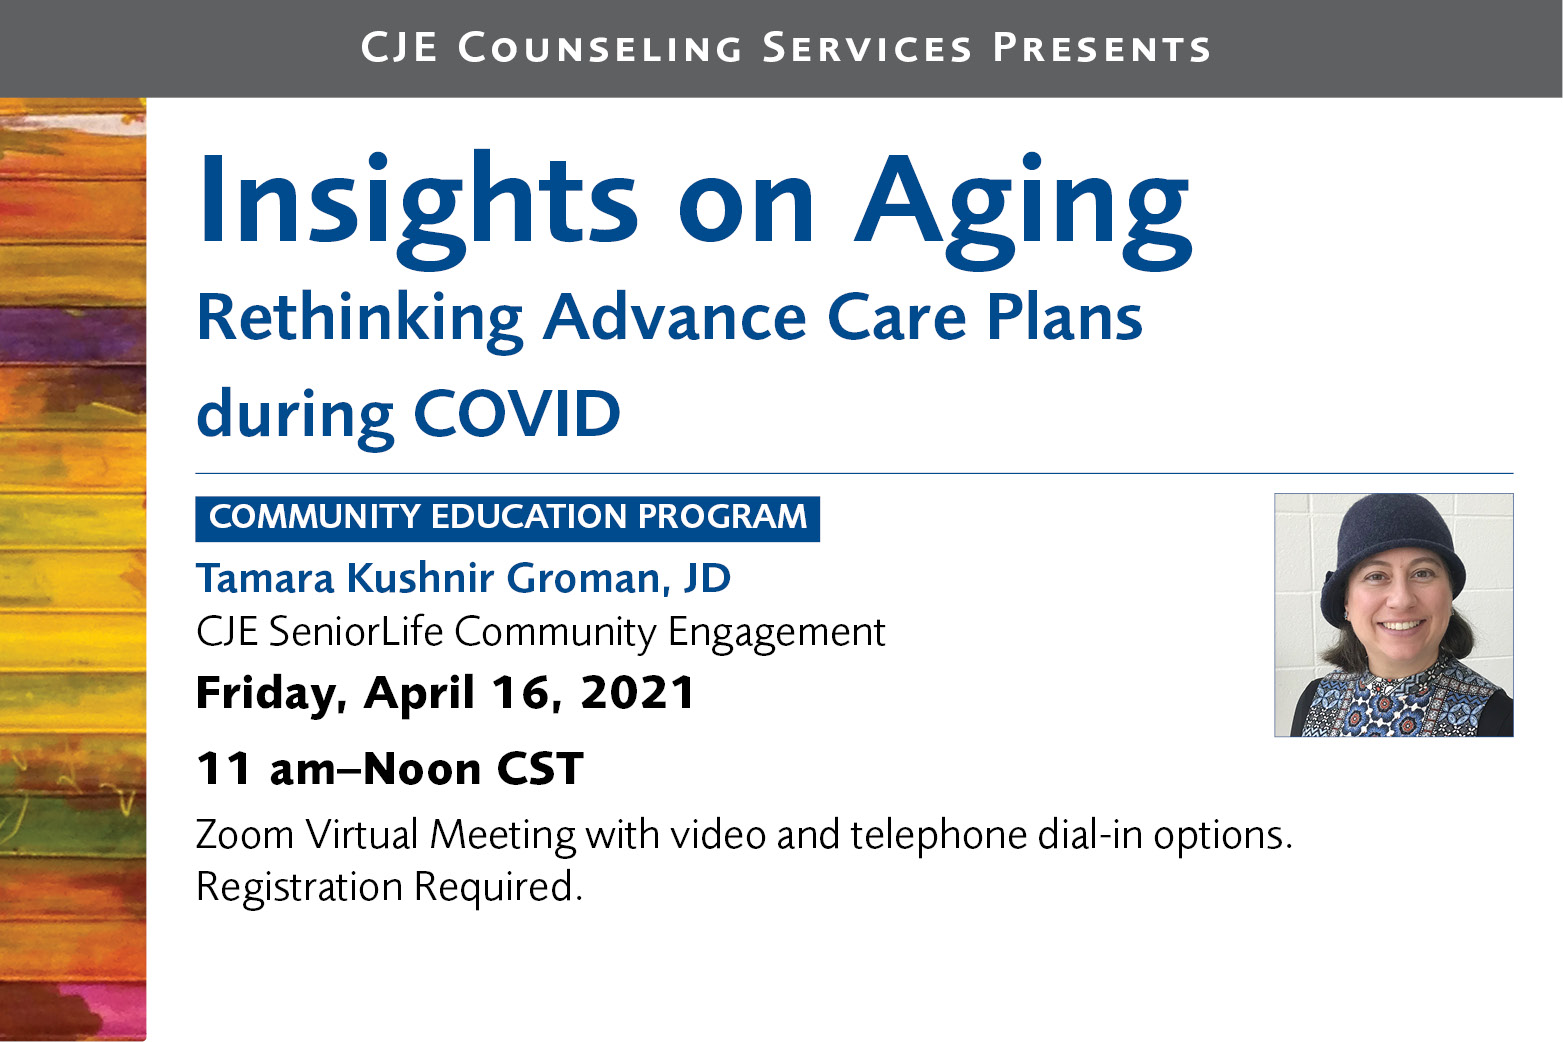 Rethinking Advance Care Plans during COVID